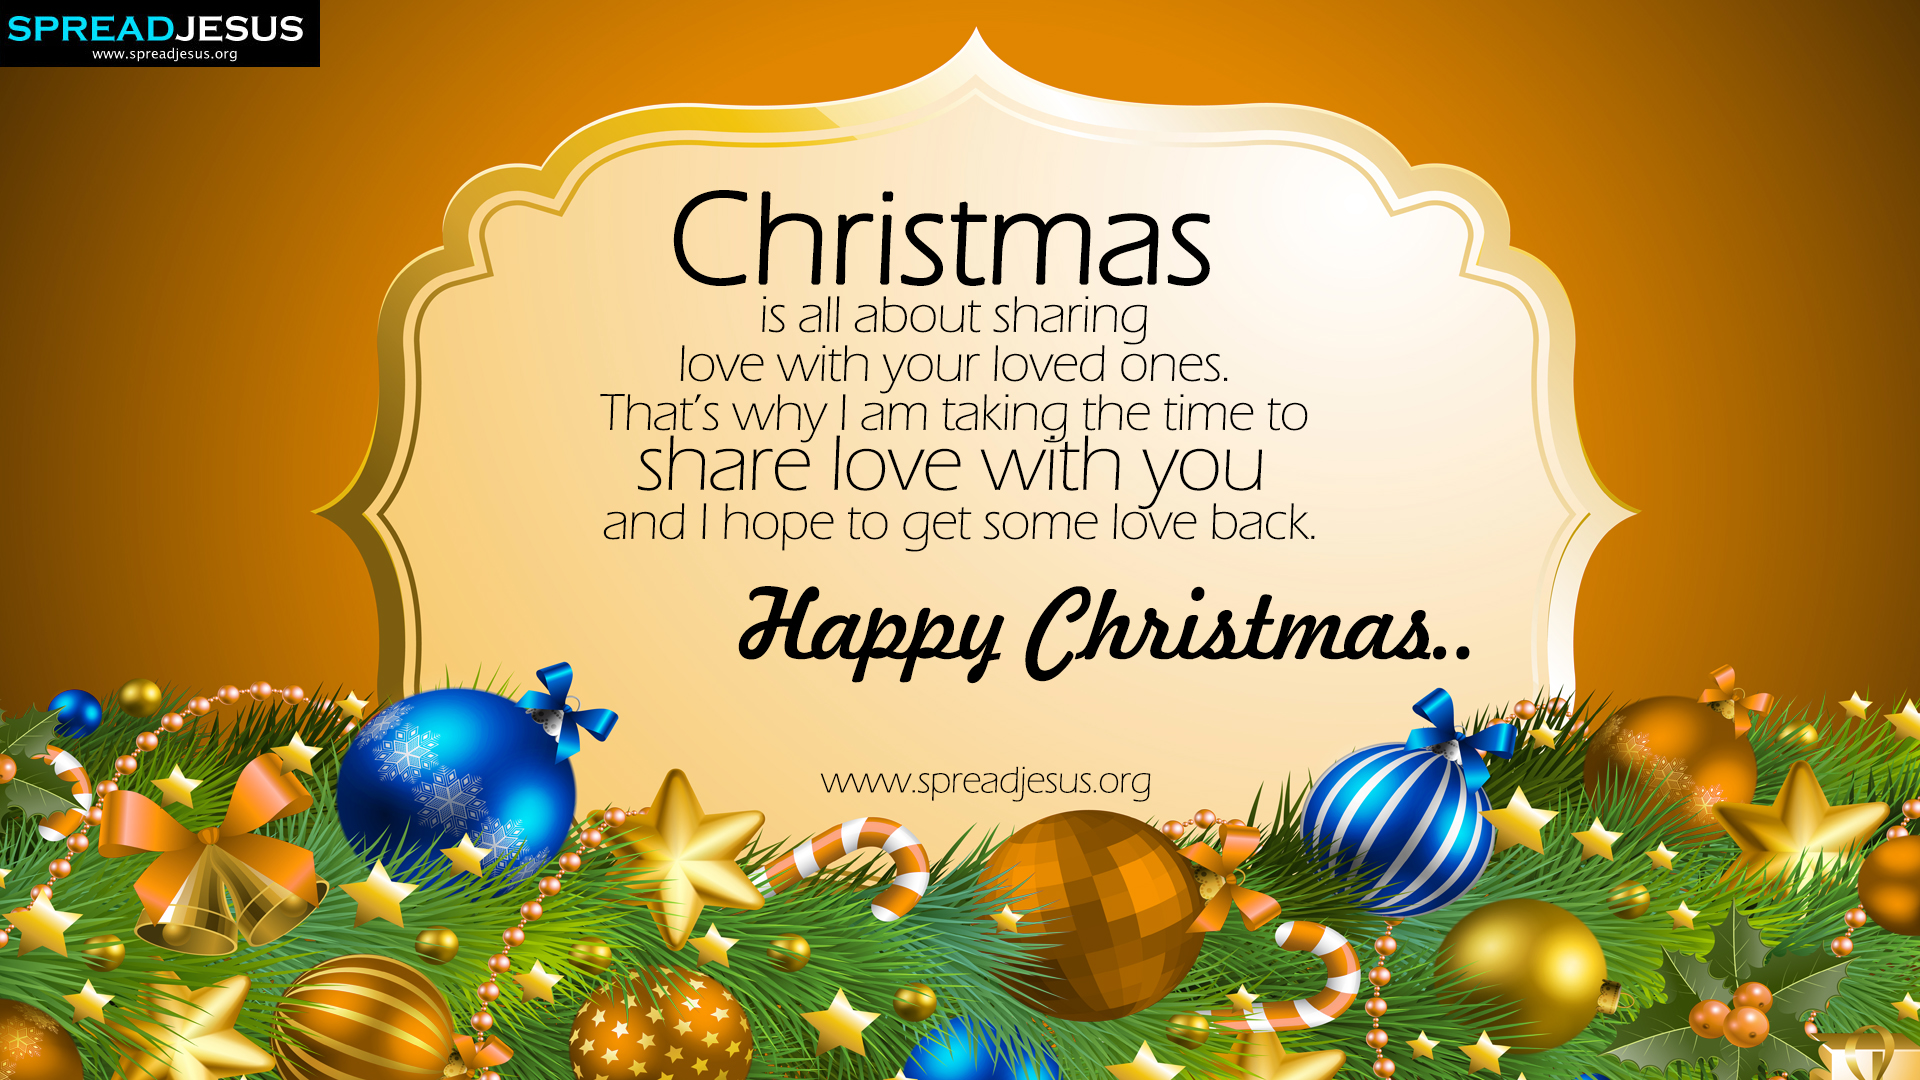 Happy Christmas HD Wallpapers Share Love with you